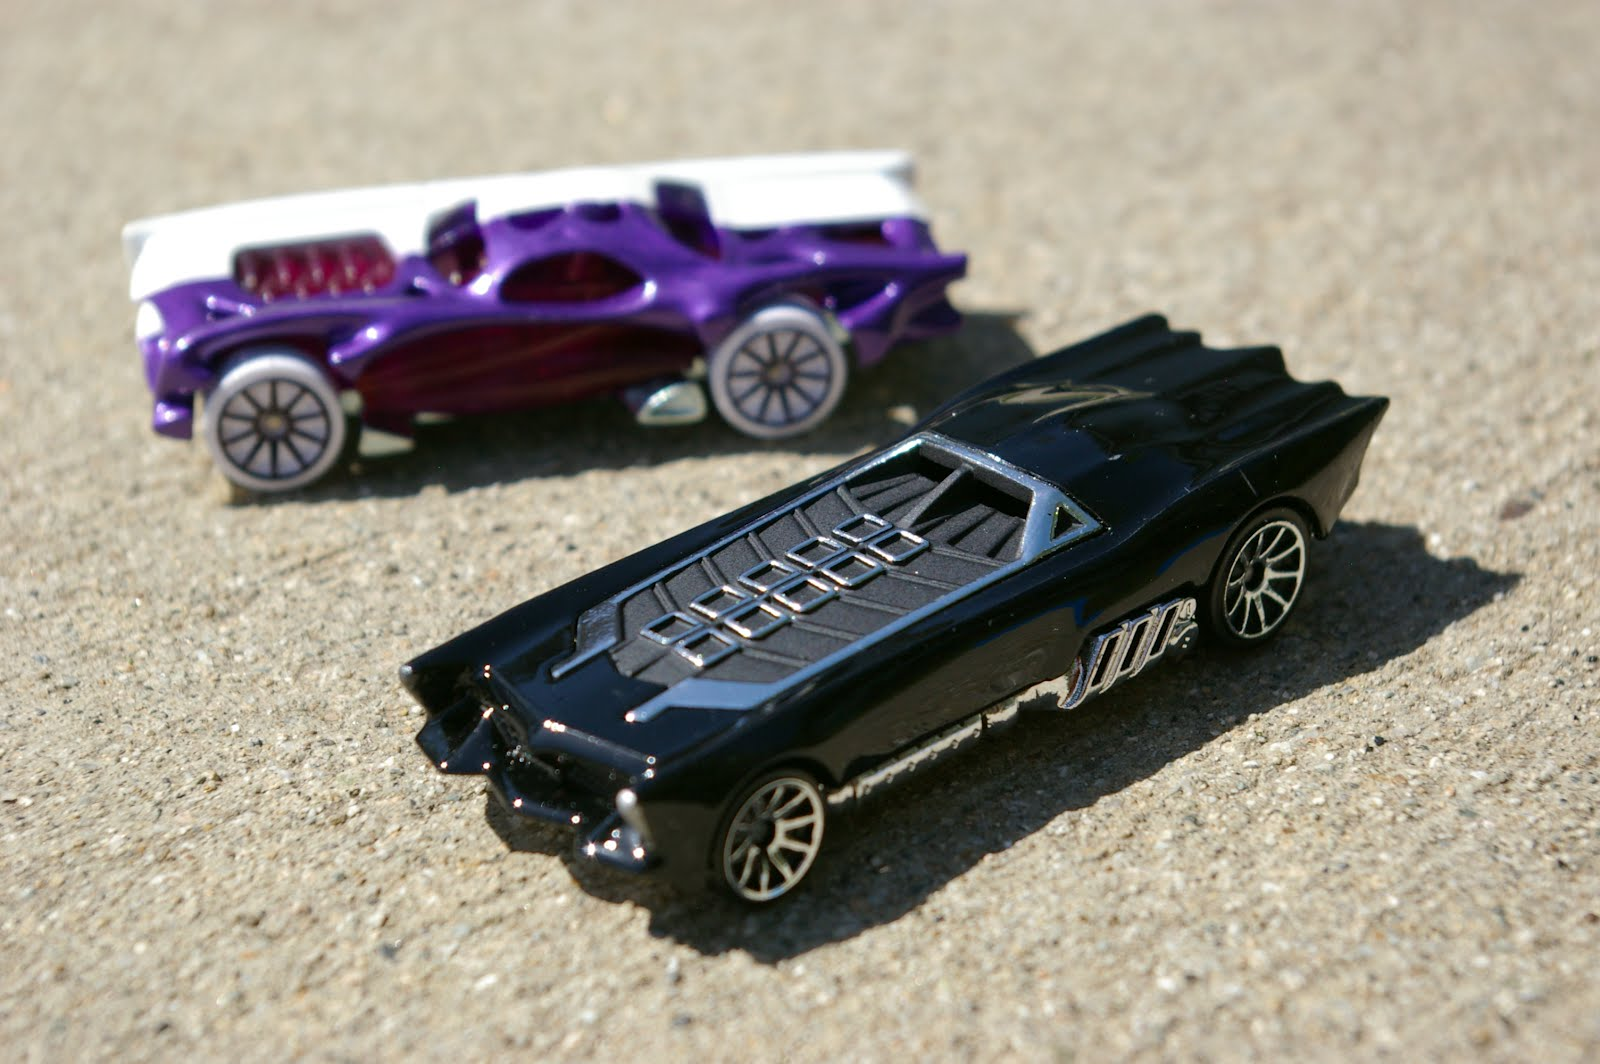 Hey The Batman And Two Face Cars I Designed Last Year Are Finally Out